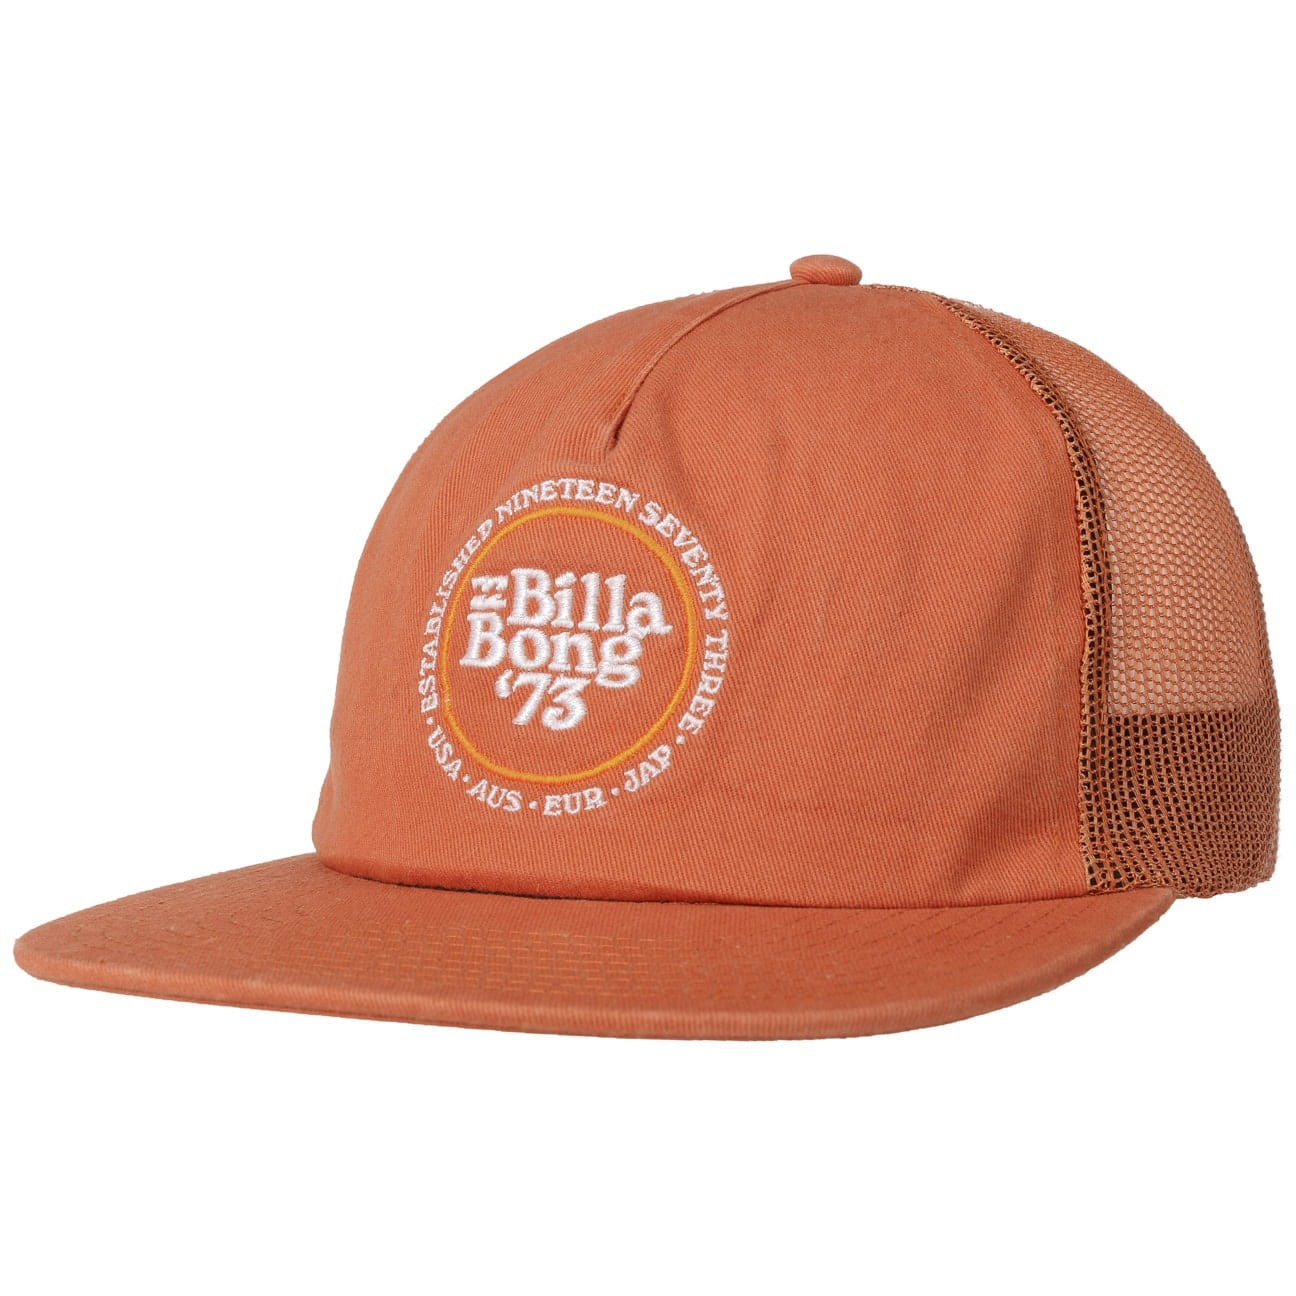 Gorra Trucker Stacked by Billabong  gorra camionero